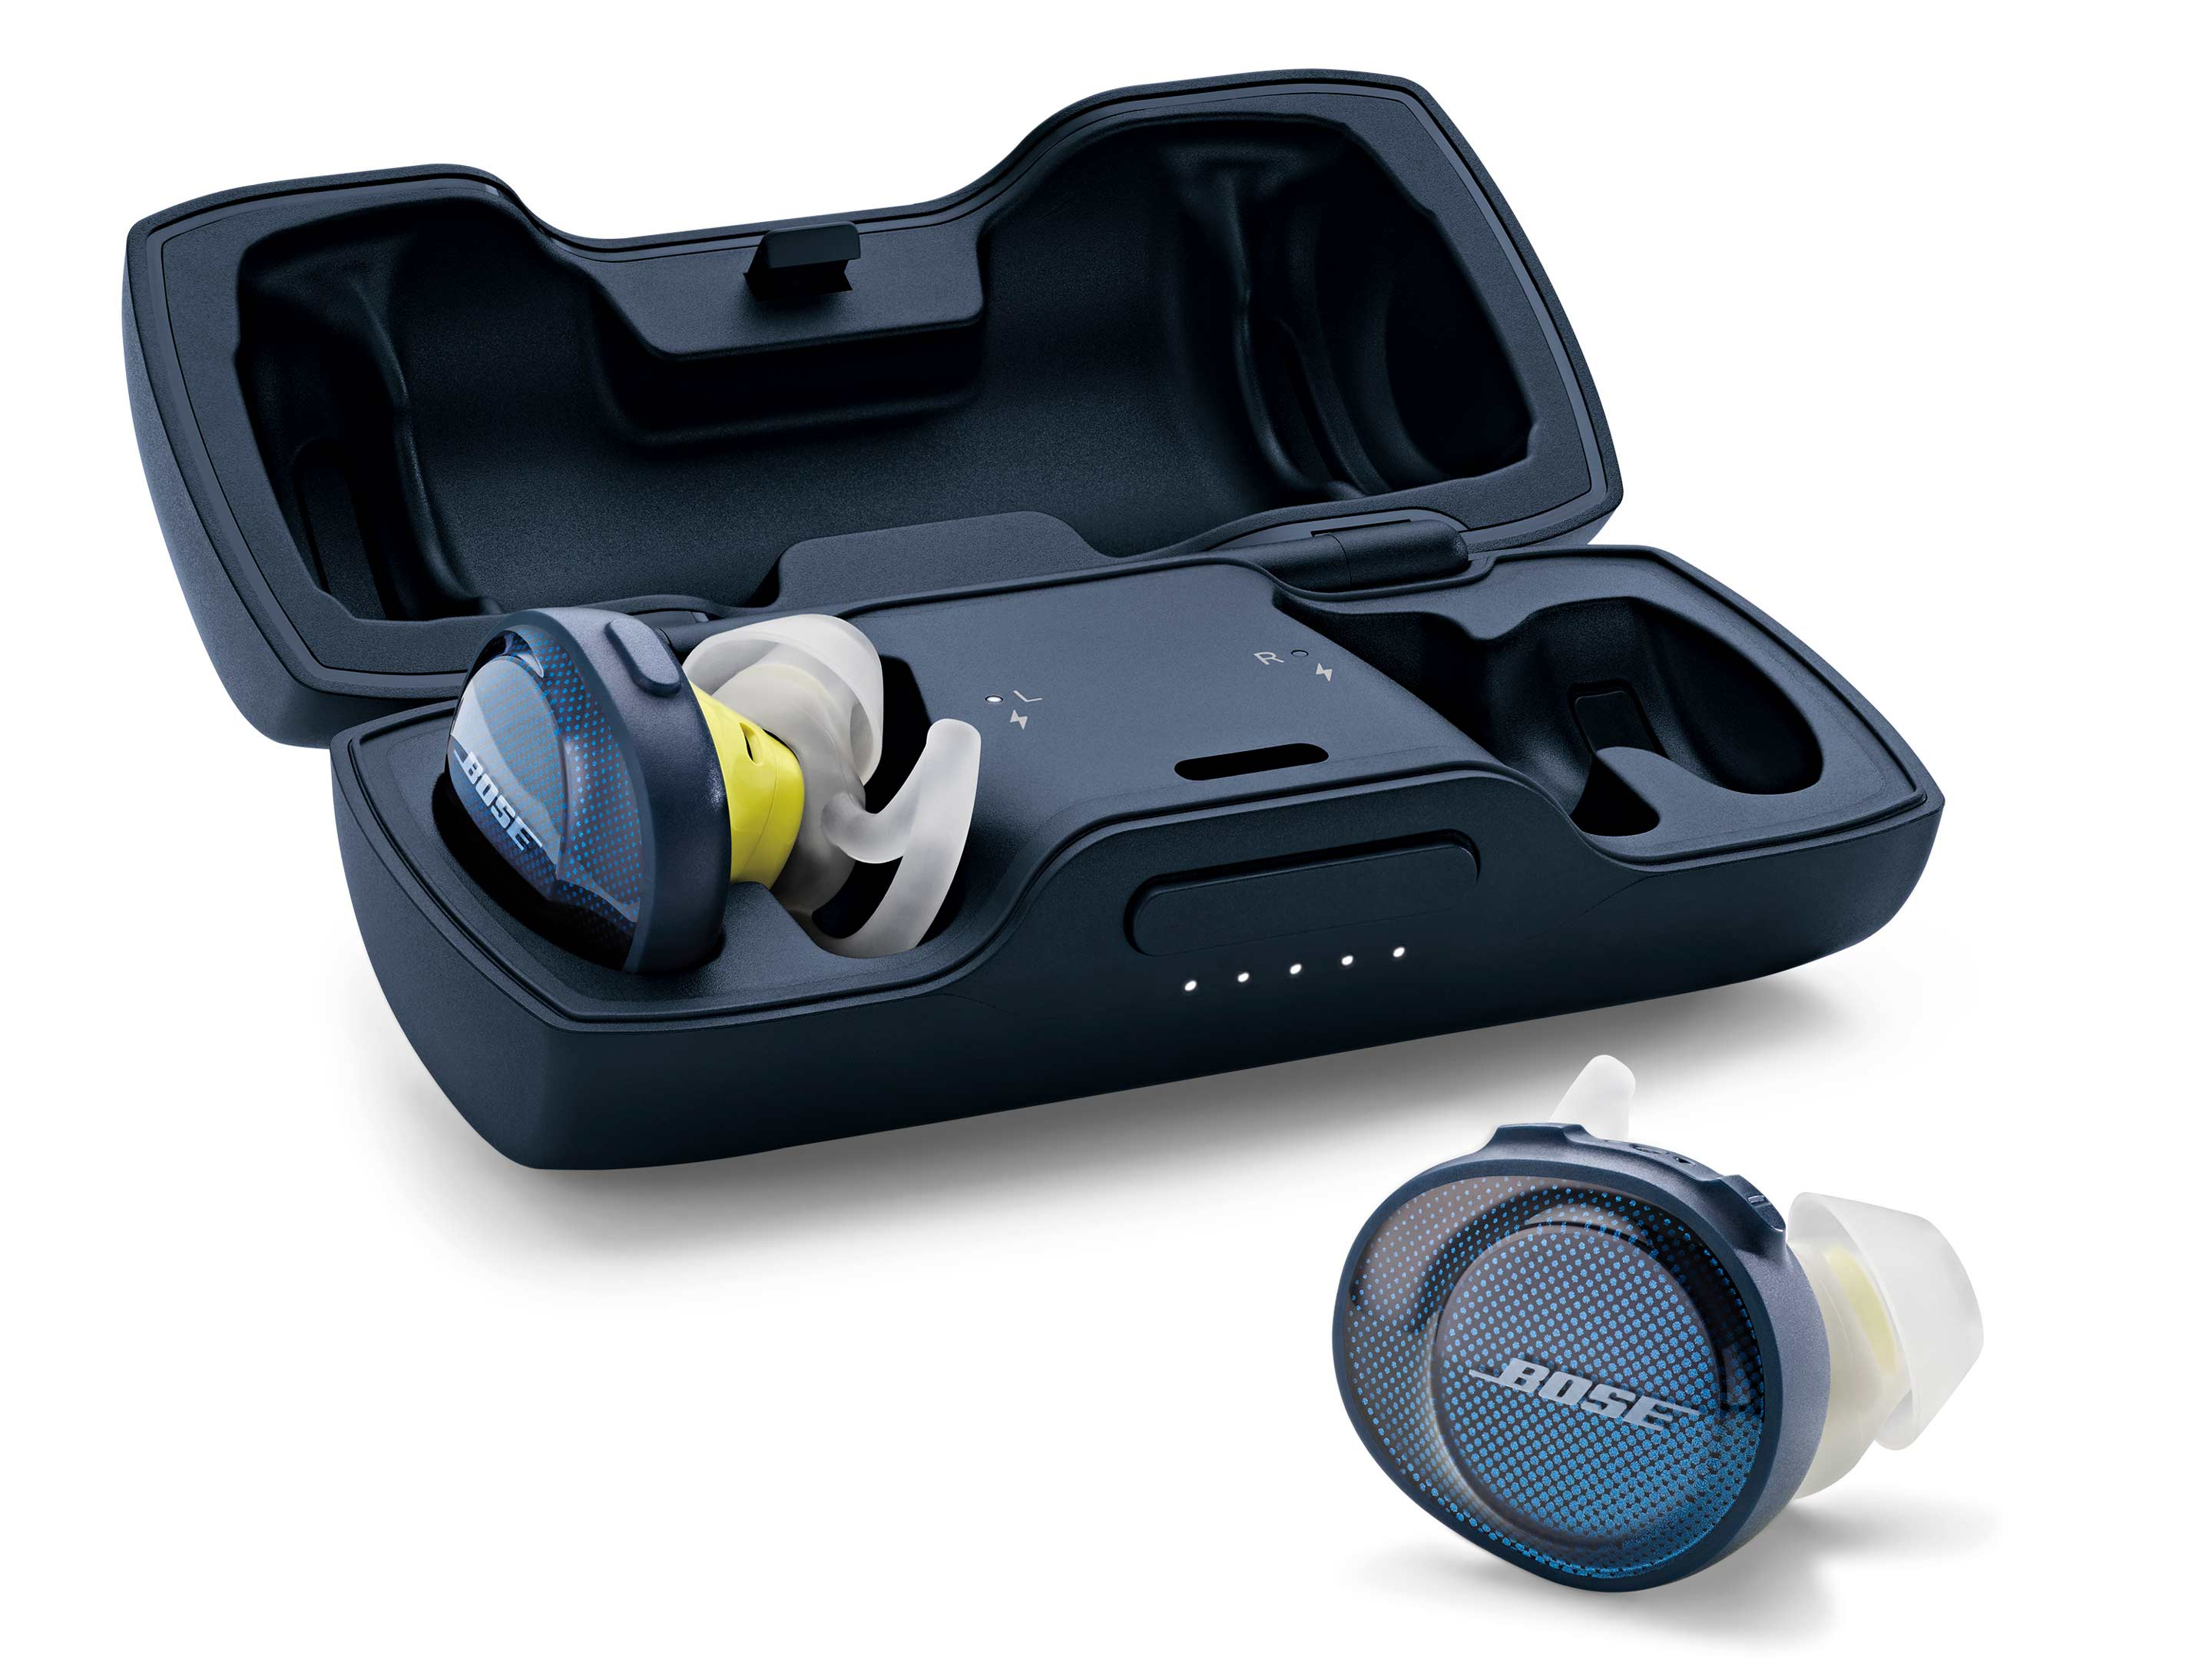 The charging case that comes with the new Bose SoundSport Free headphones